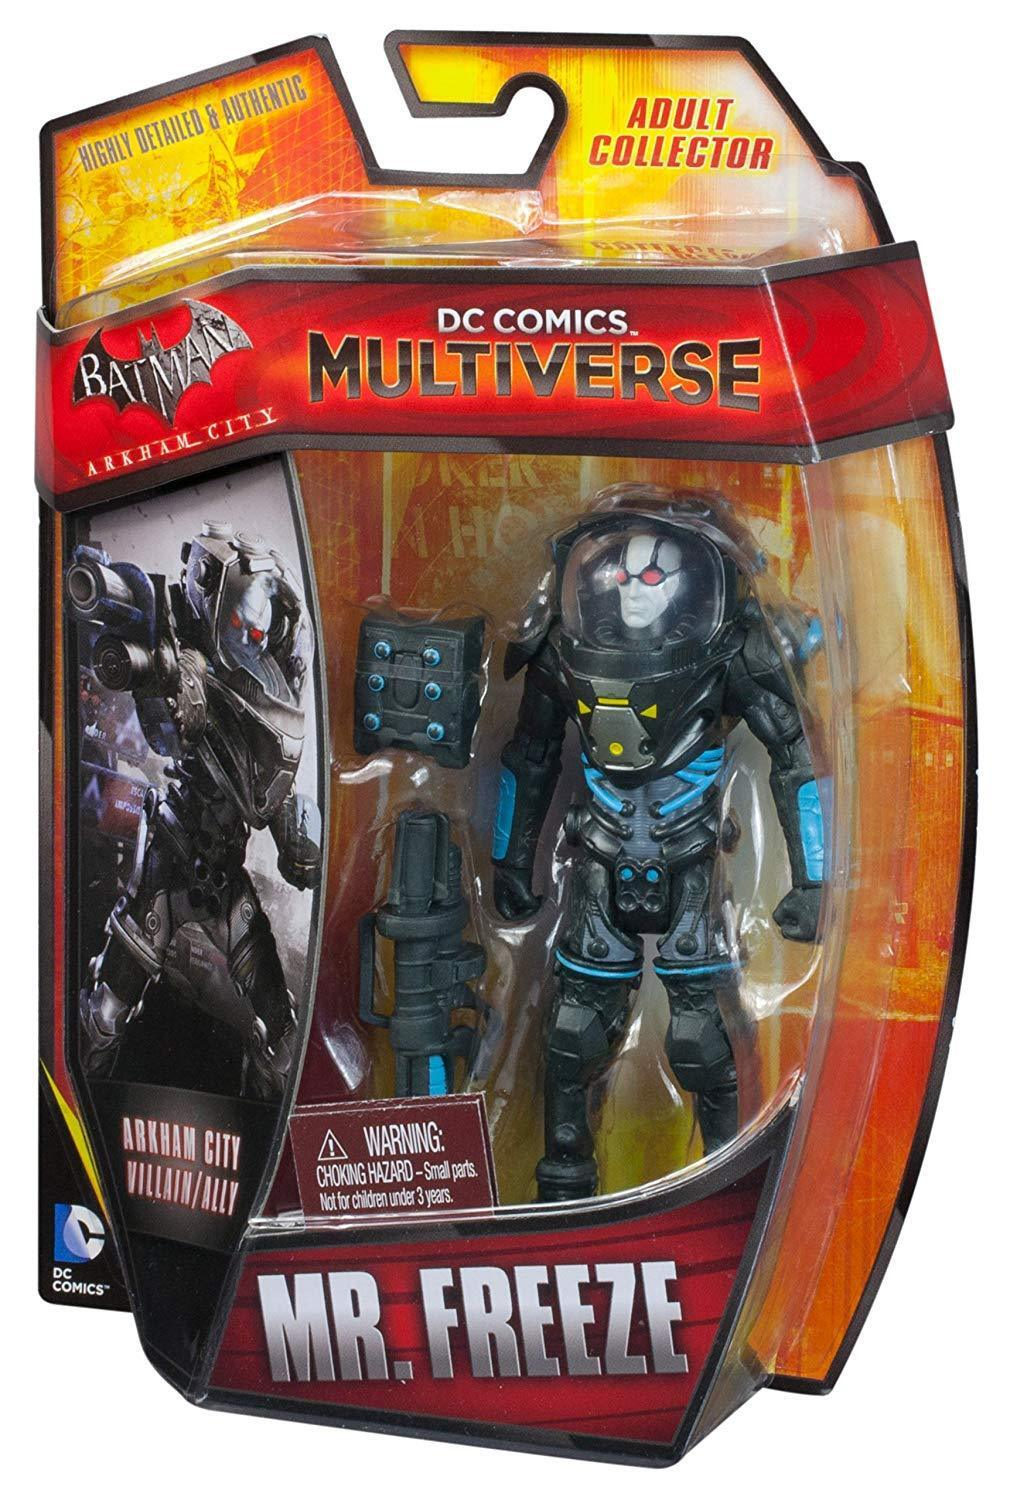 DC Comics Multiverse Arkham City Mr. Freeze Figure